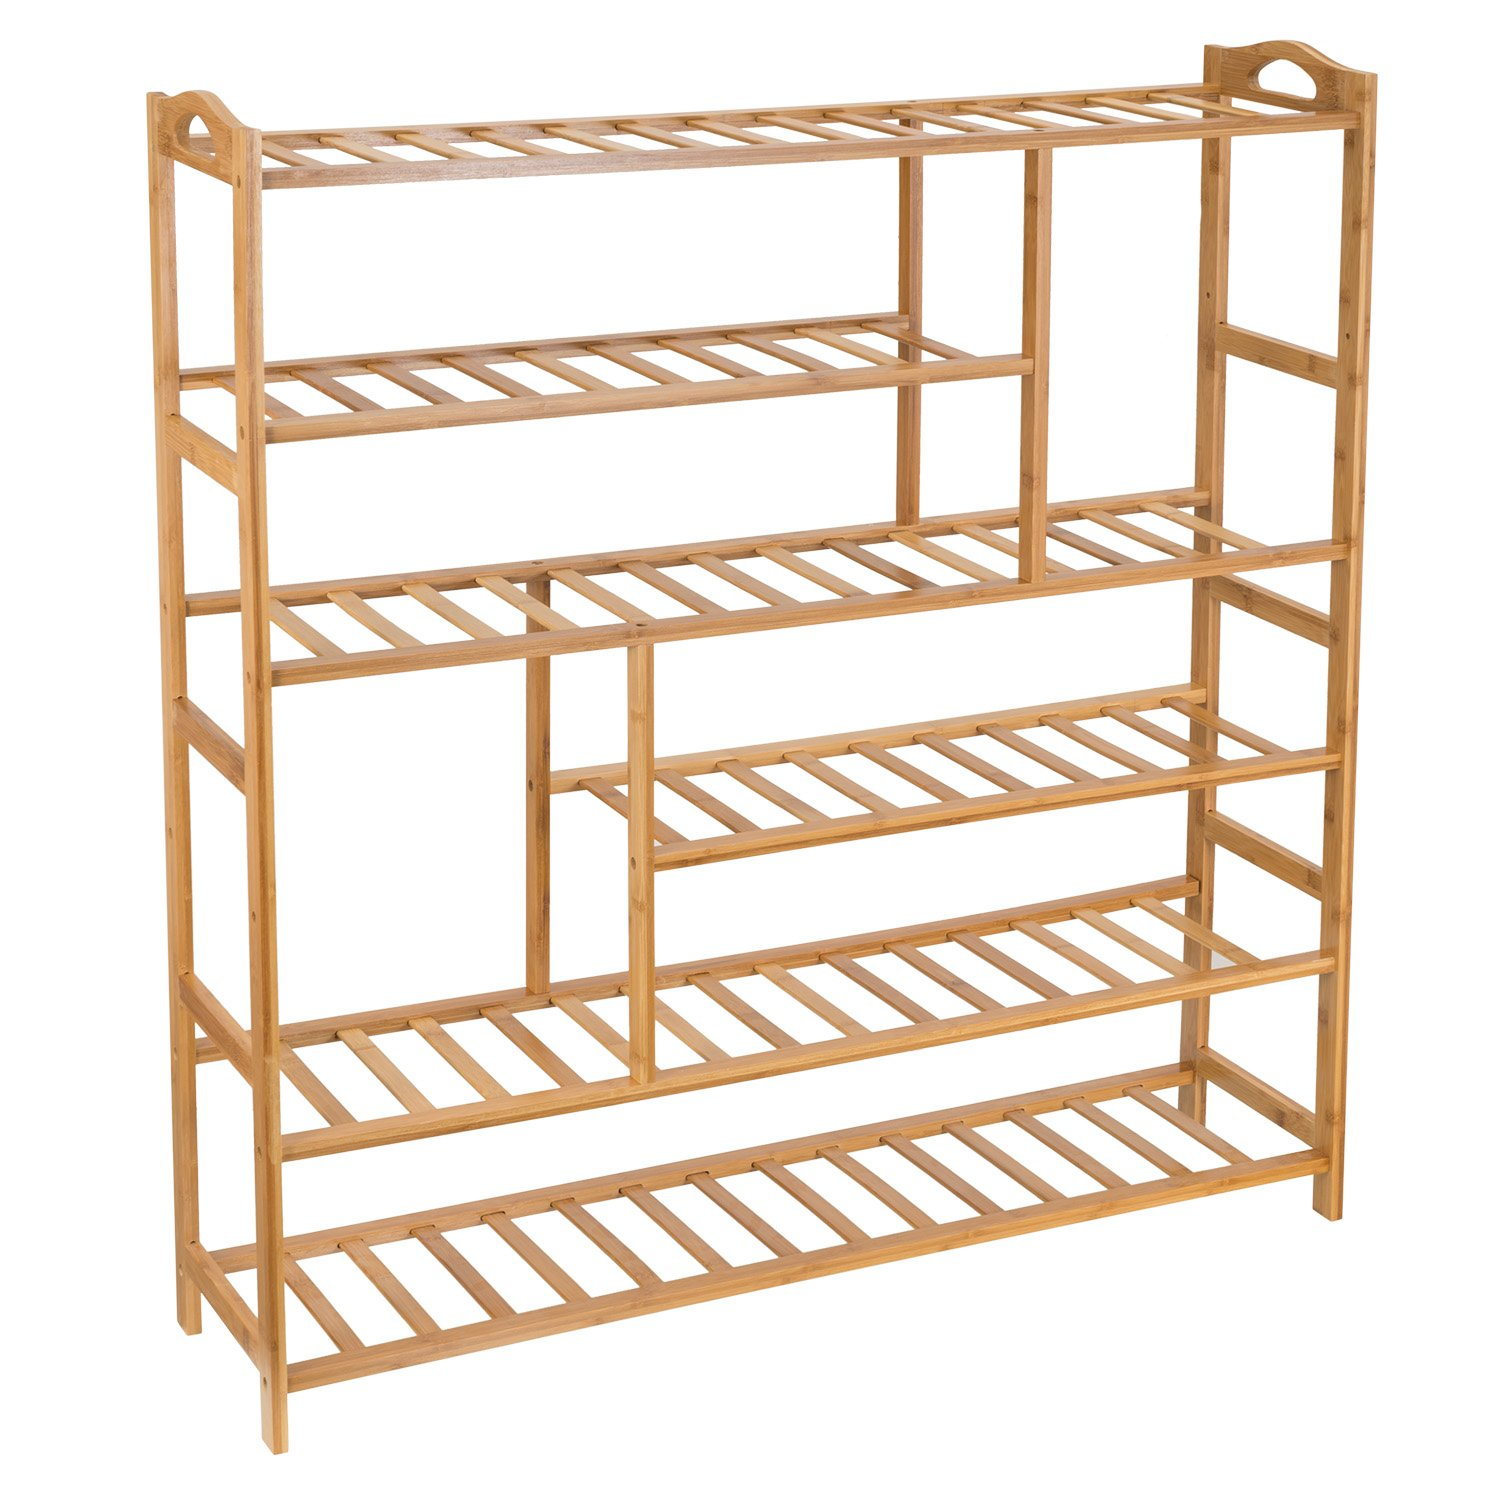 Ollieroo Bamboo Shoe Rack 6-Tier Entryway Shoe Shelf Storage Organizer Free Standing Shelves ST21202